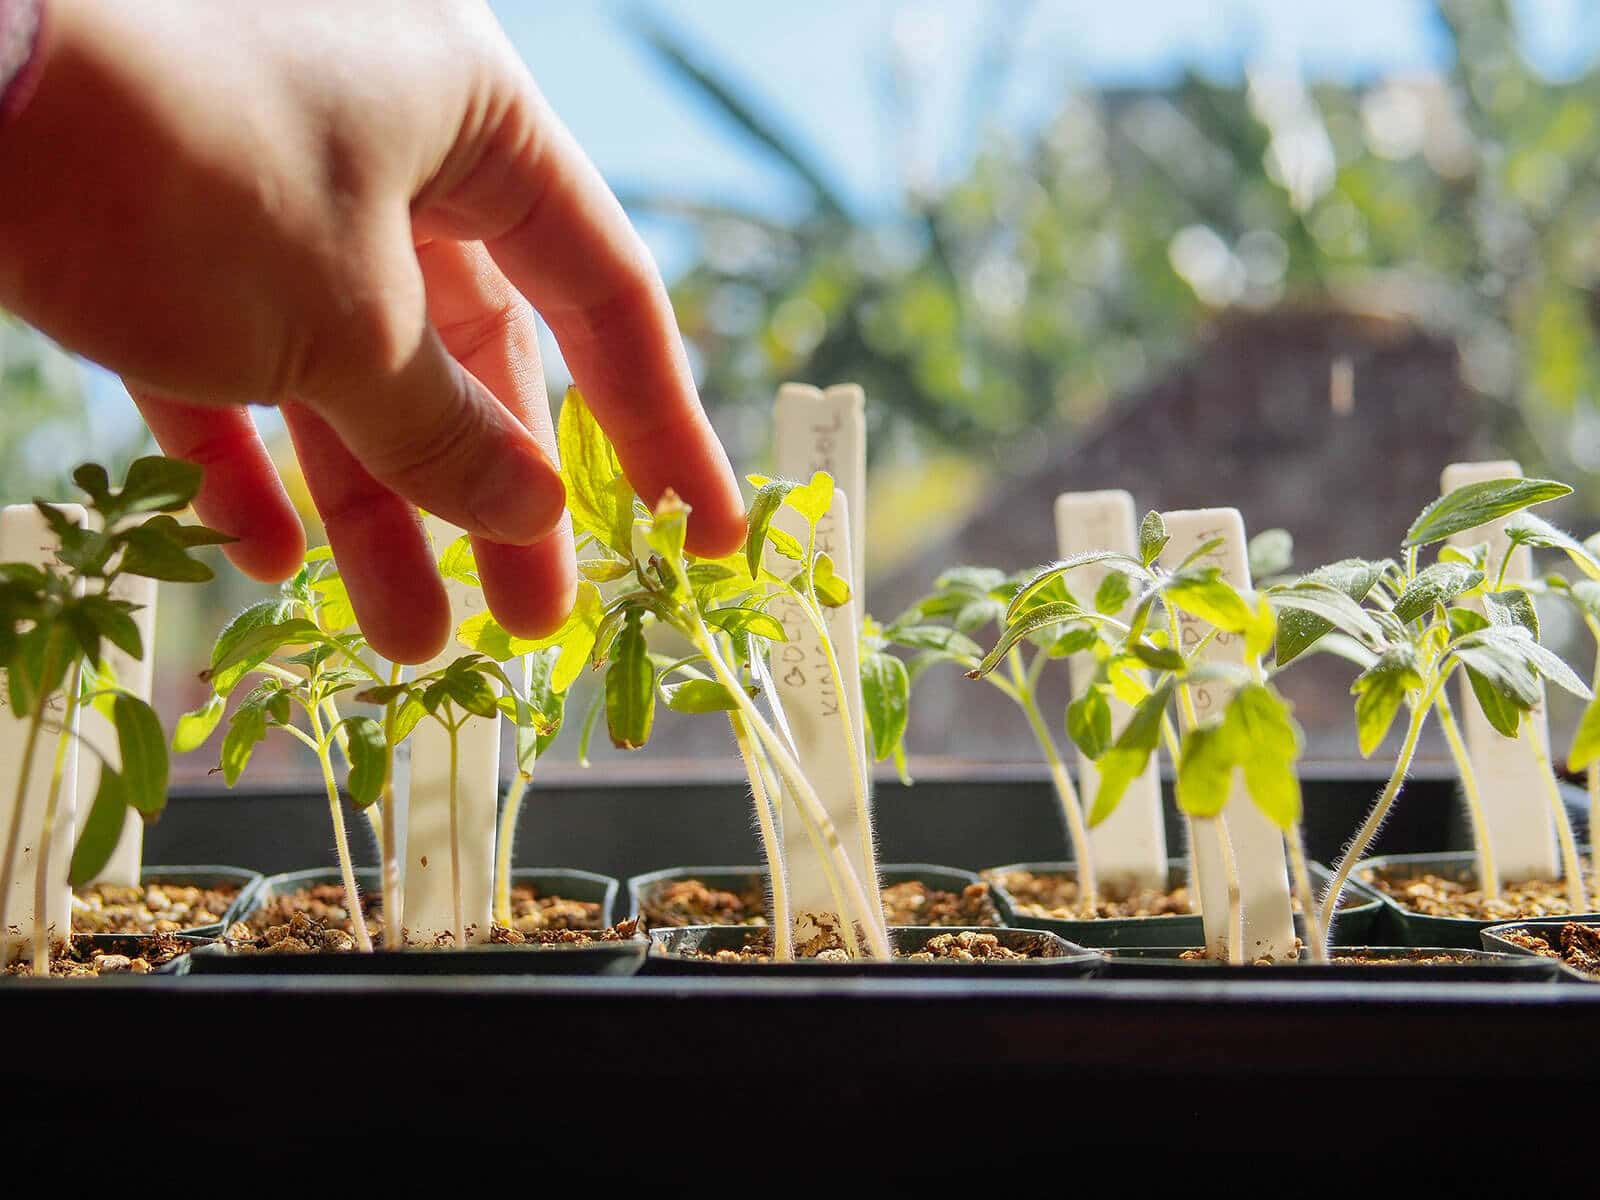 Brushing seedlings with your hand helps them develop stronger stems